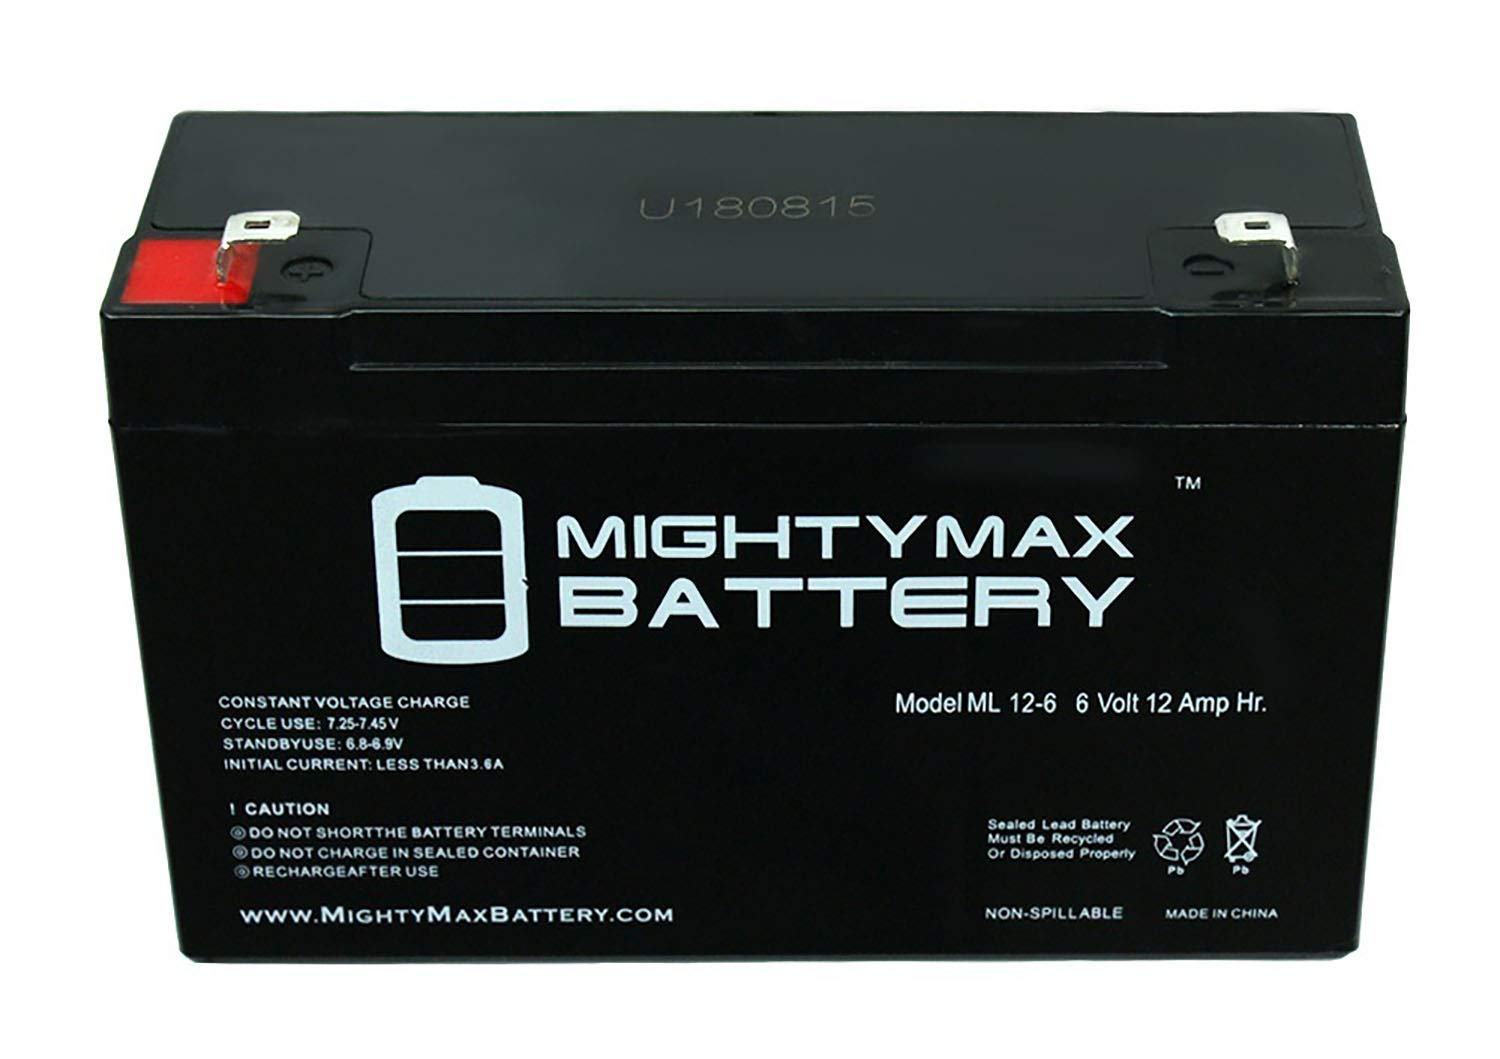 Mighty Max Battery 6V 12AH F2 SLA Battery for LITHONIA Emergency Exit Light - 6 Pack Brand Product by Mighty Max Battery (Image #3)